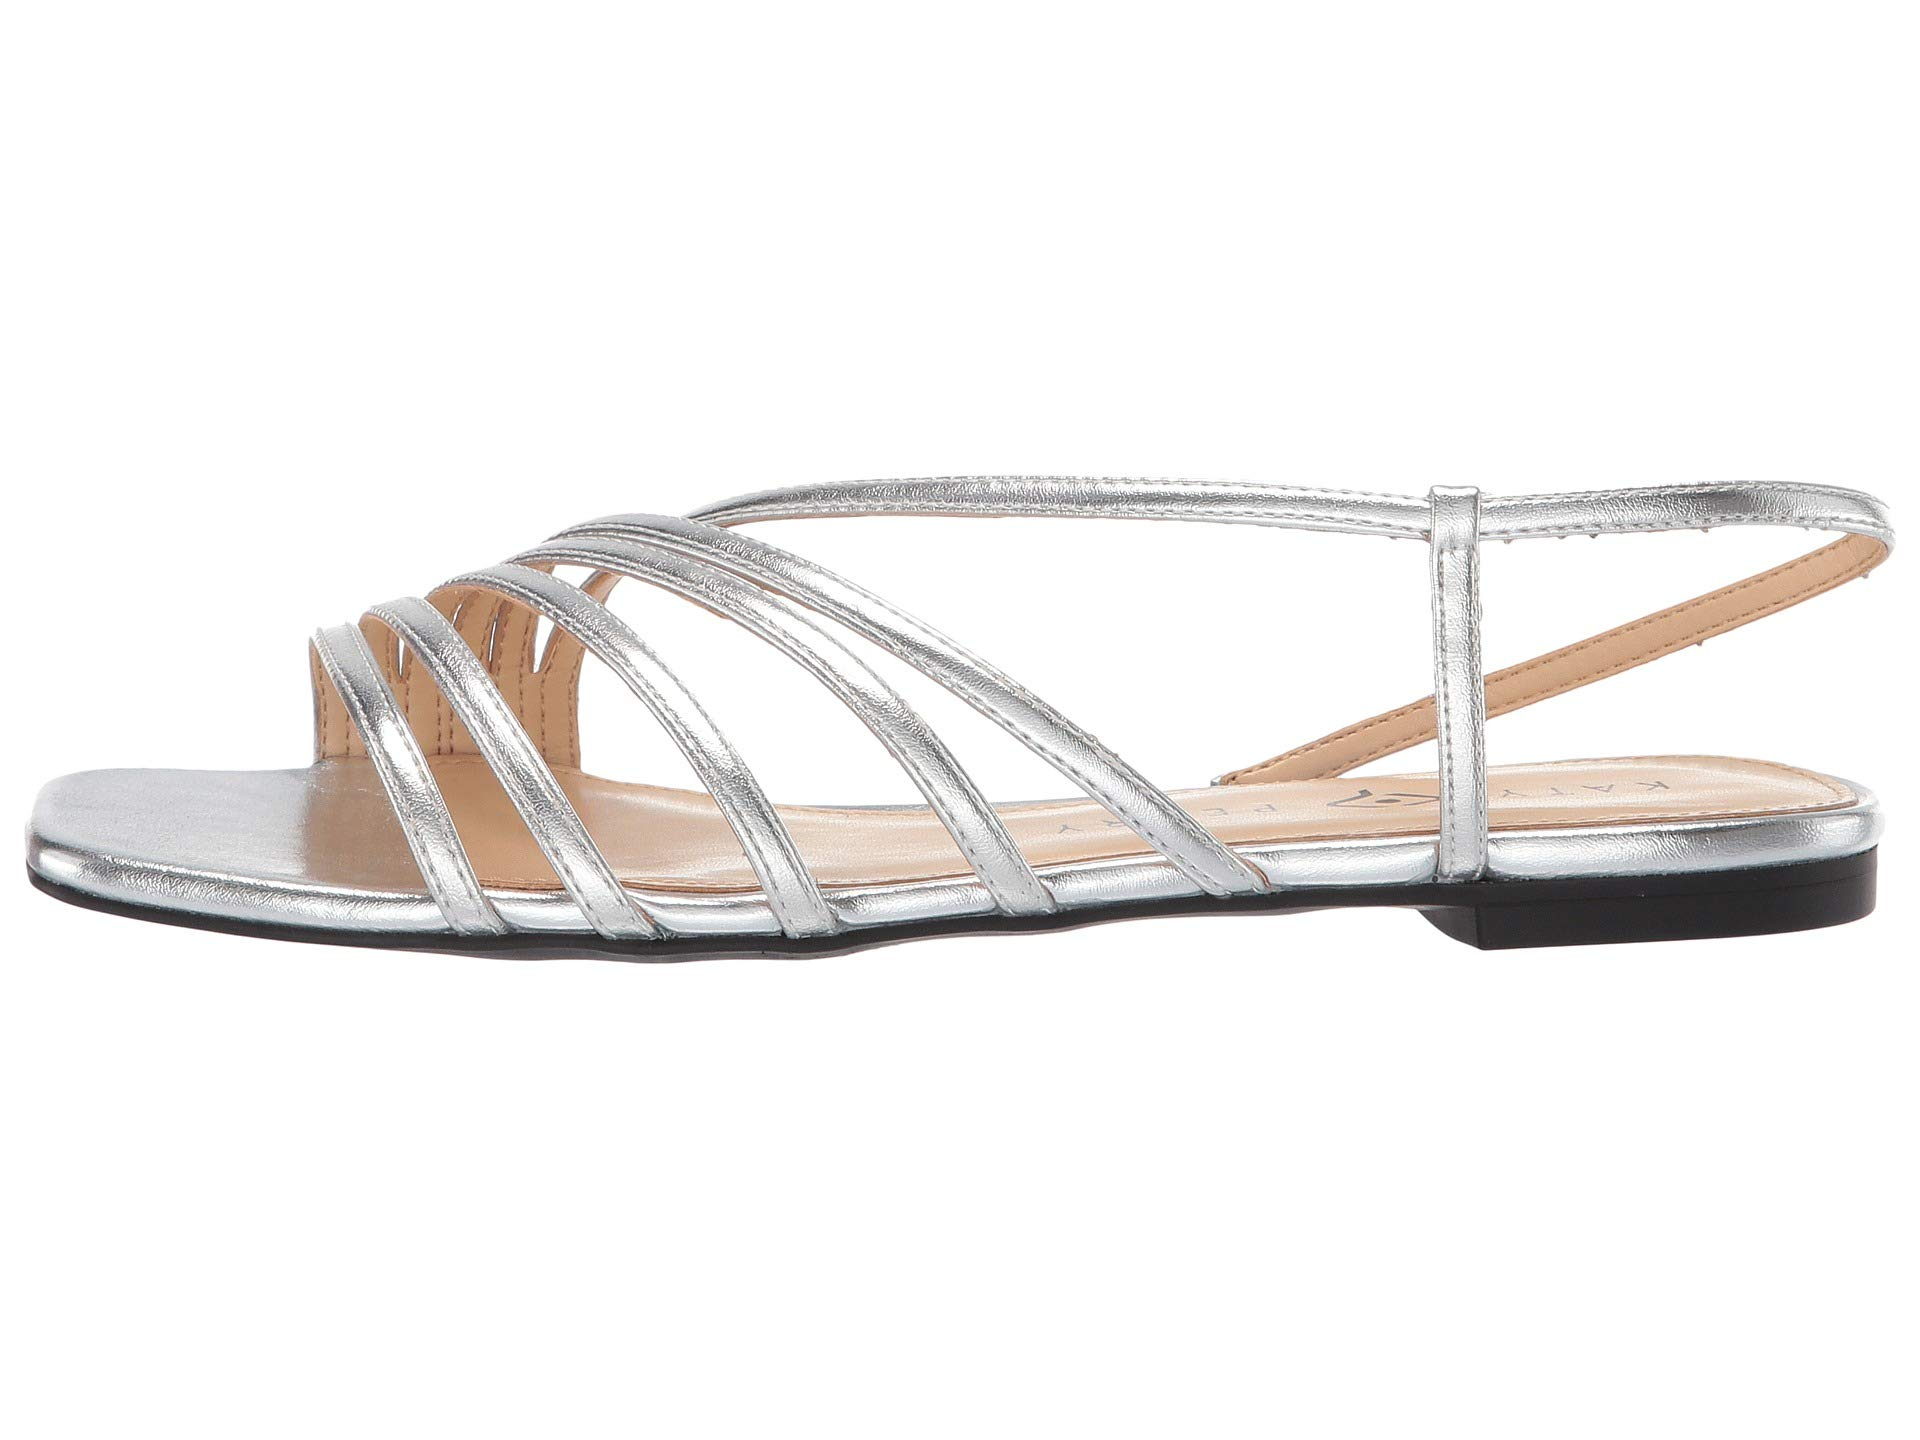 katy perry strappy sandals zappos